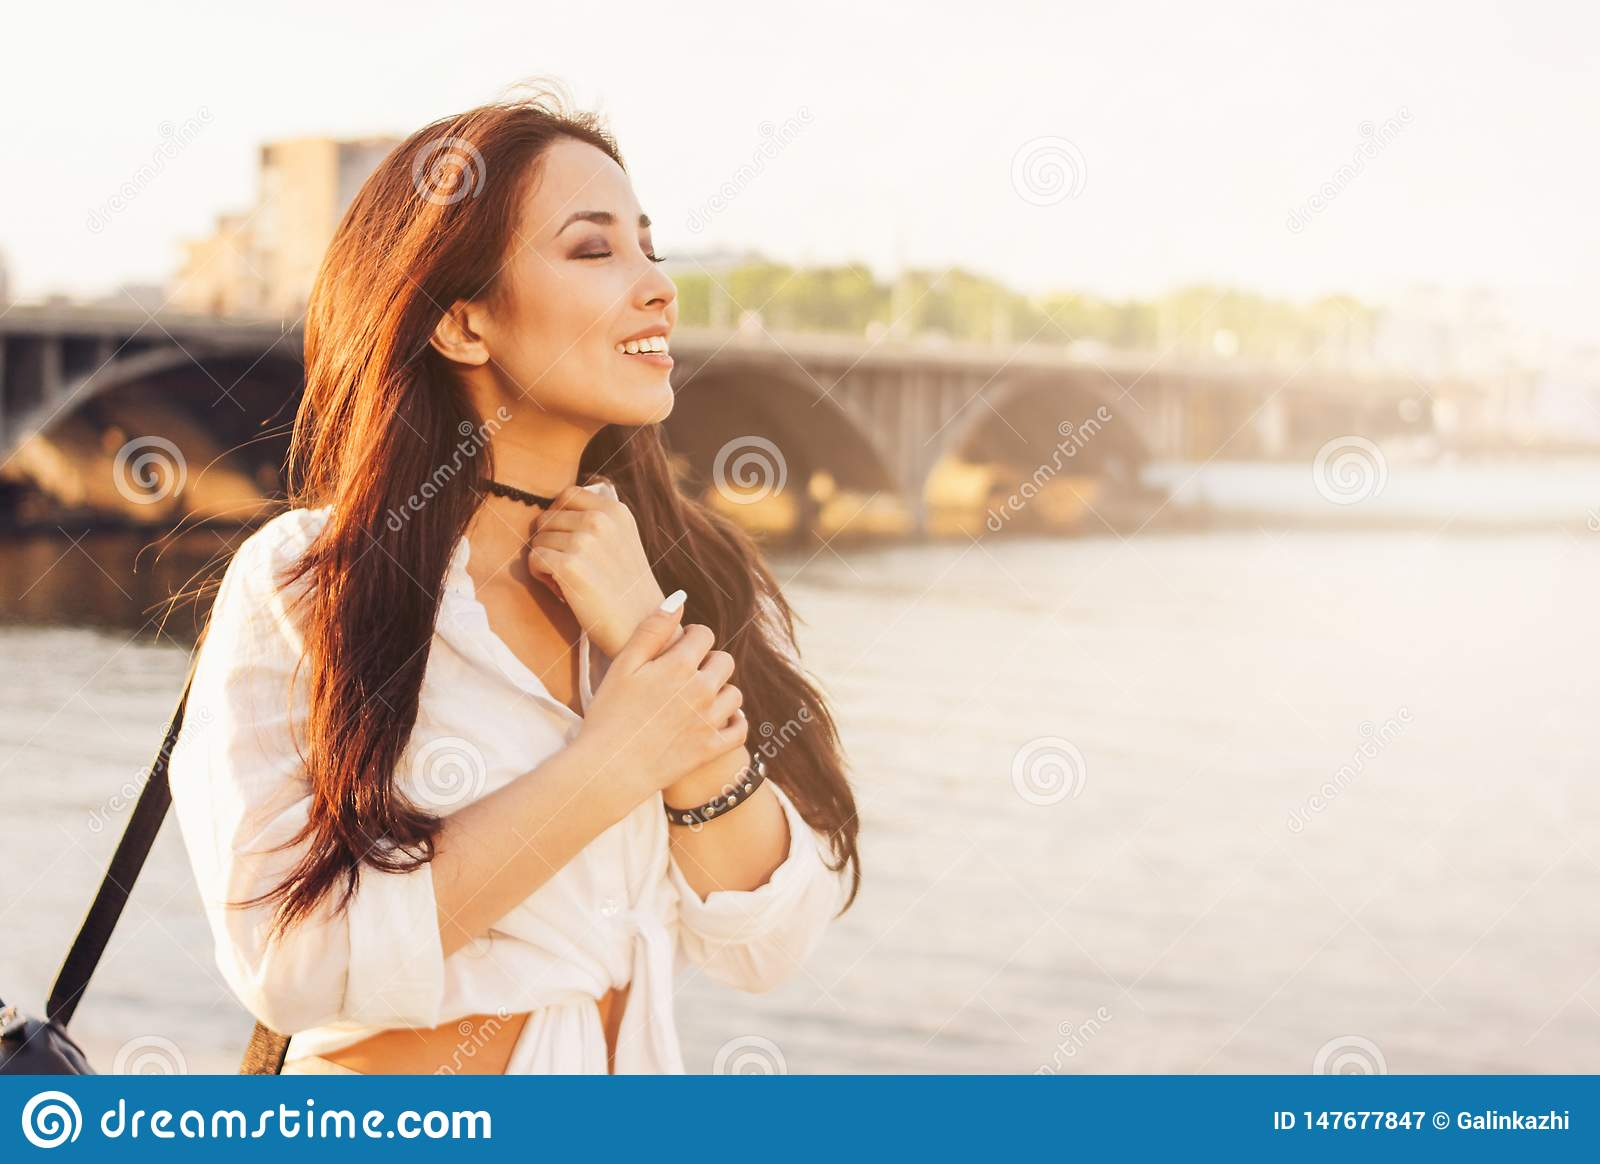 Positive beautiful long hair happy asian girl in white shirt on city river bridge background, summer travel vacation time